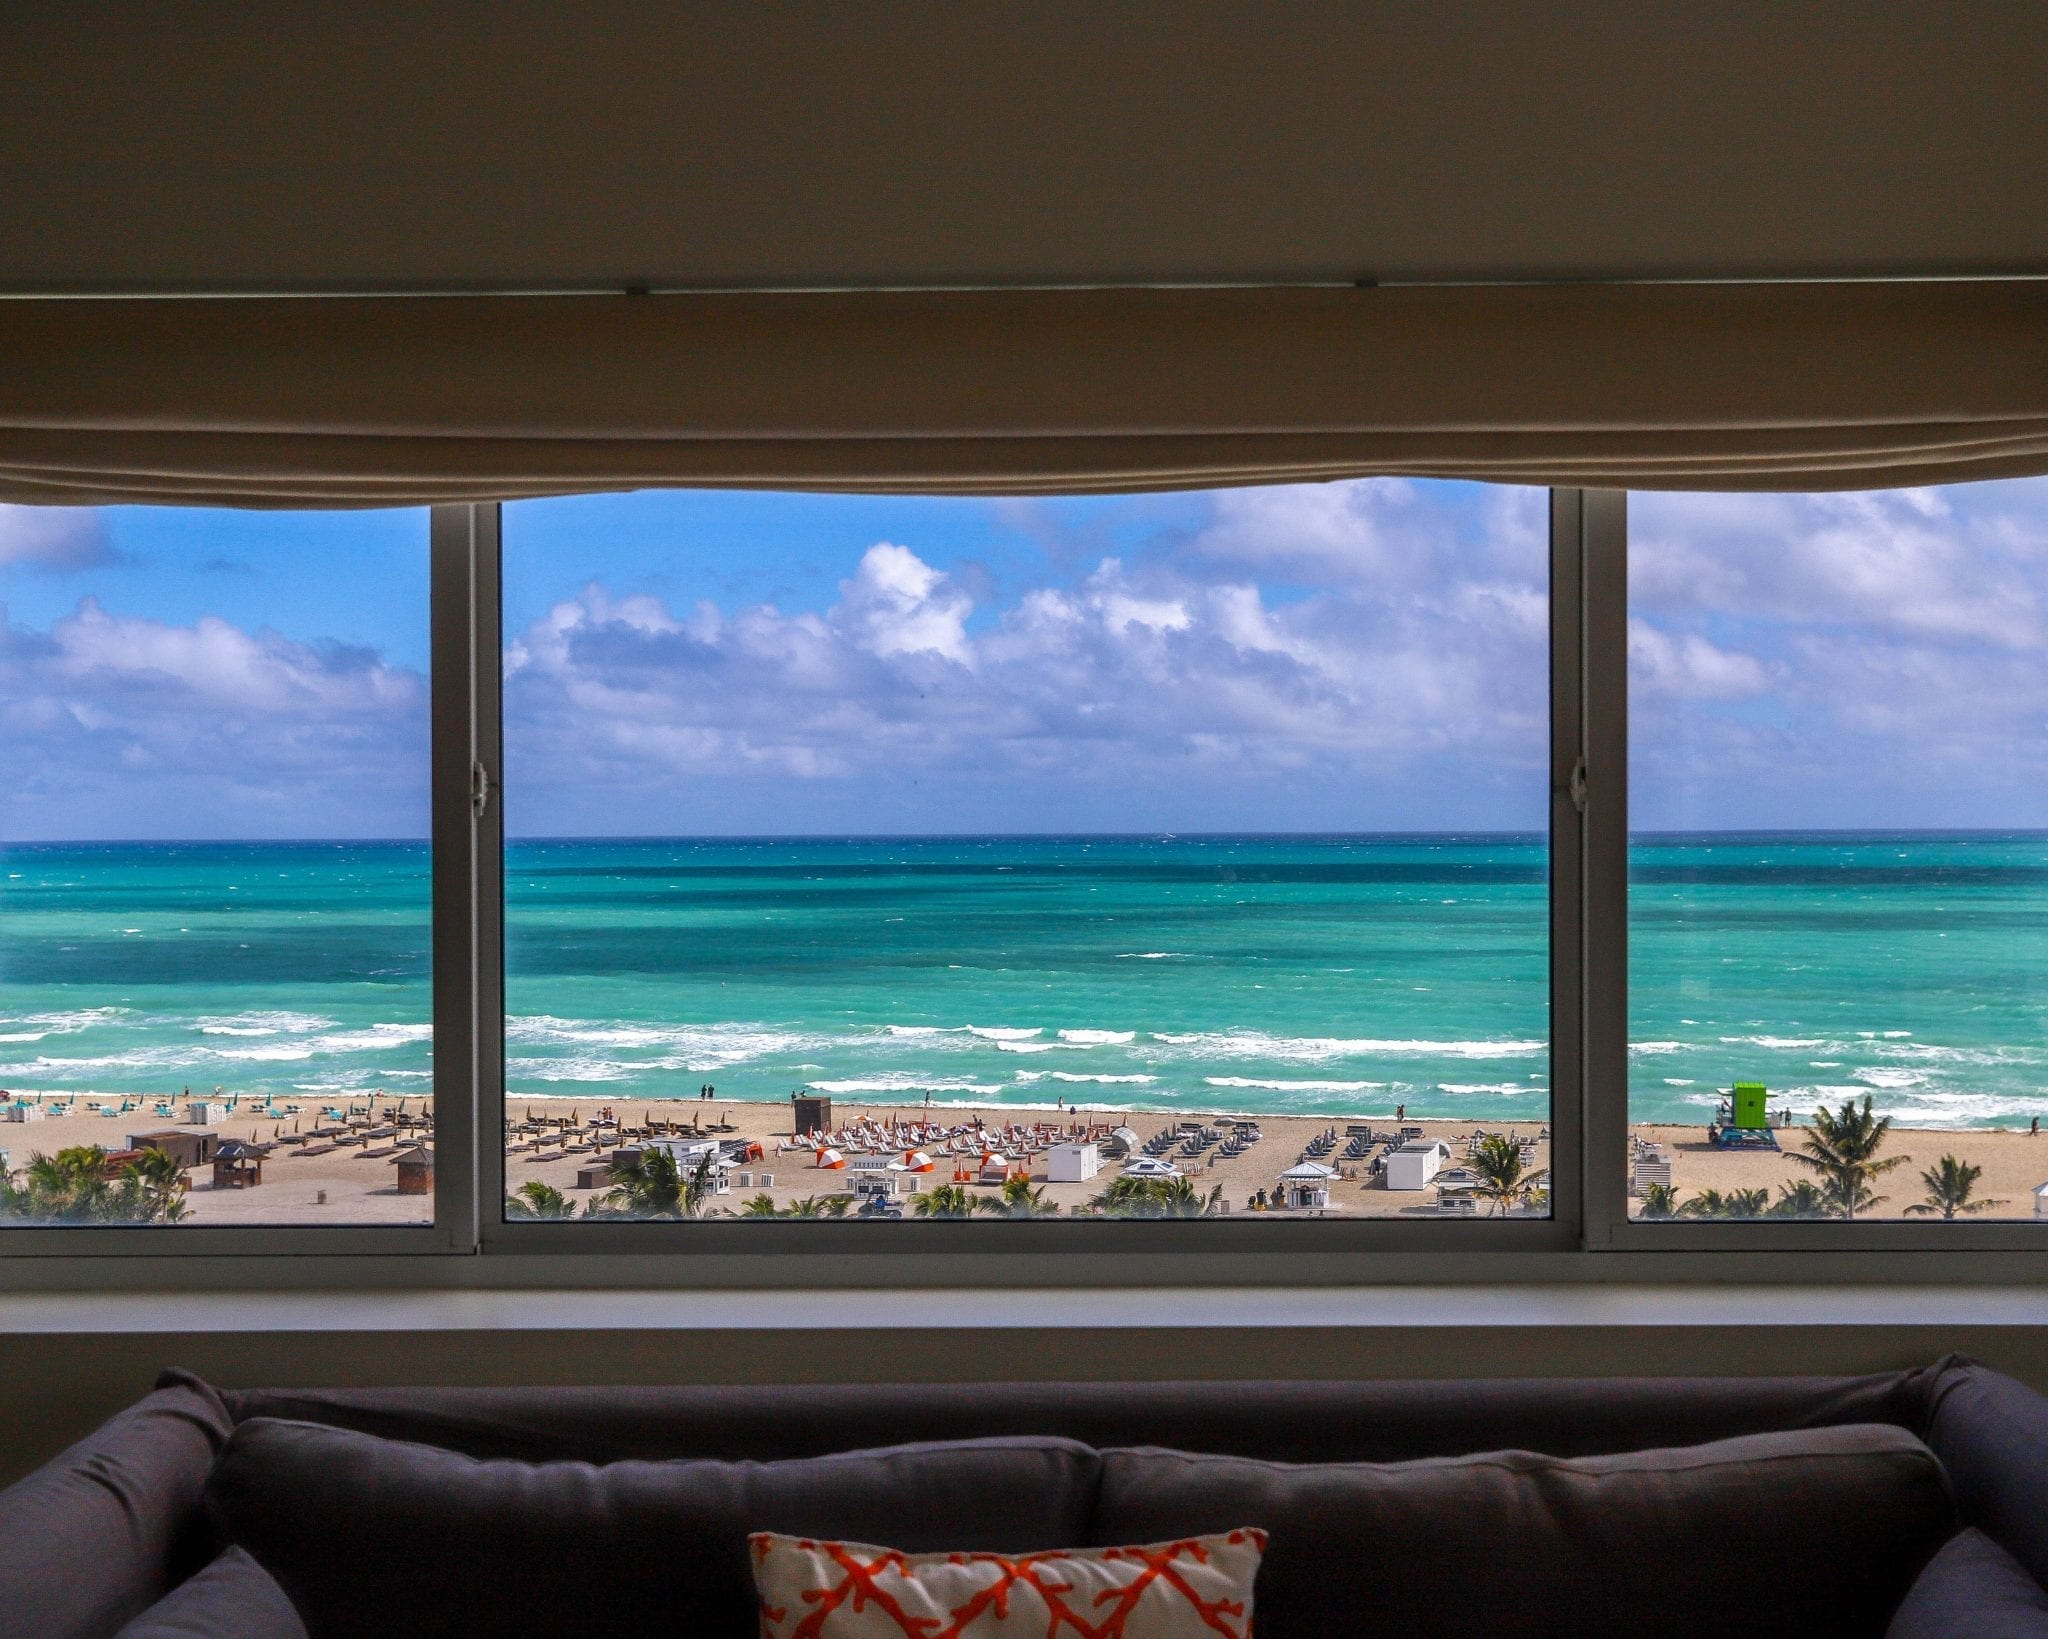 window showing view of blue green ocean and beach